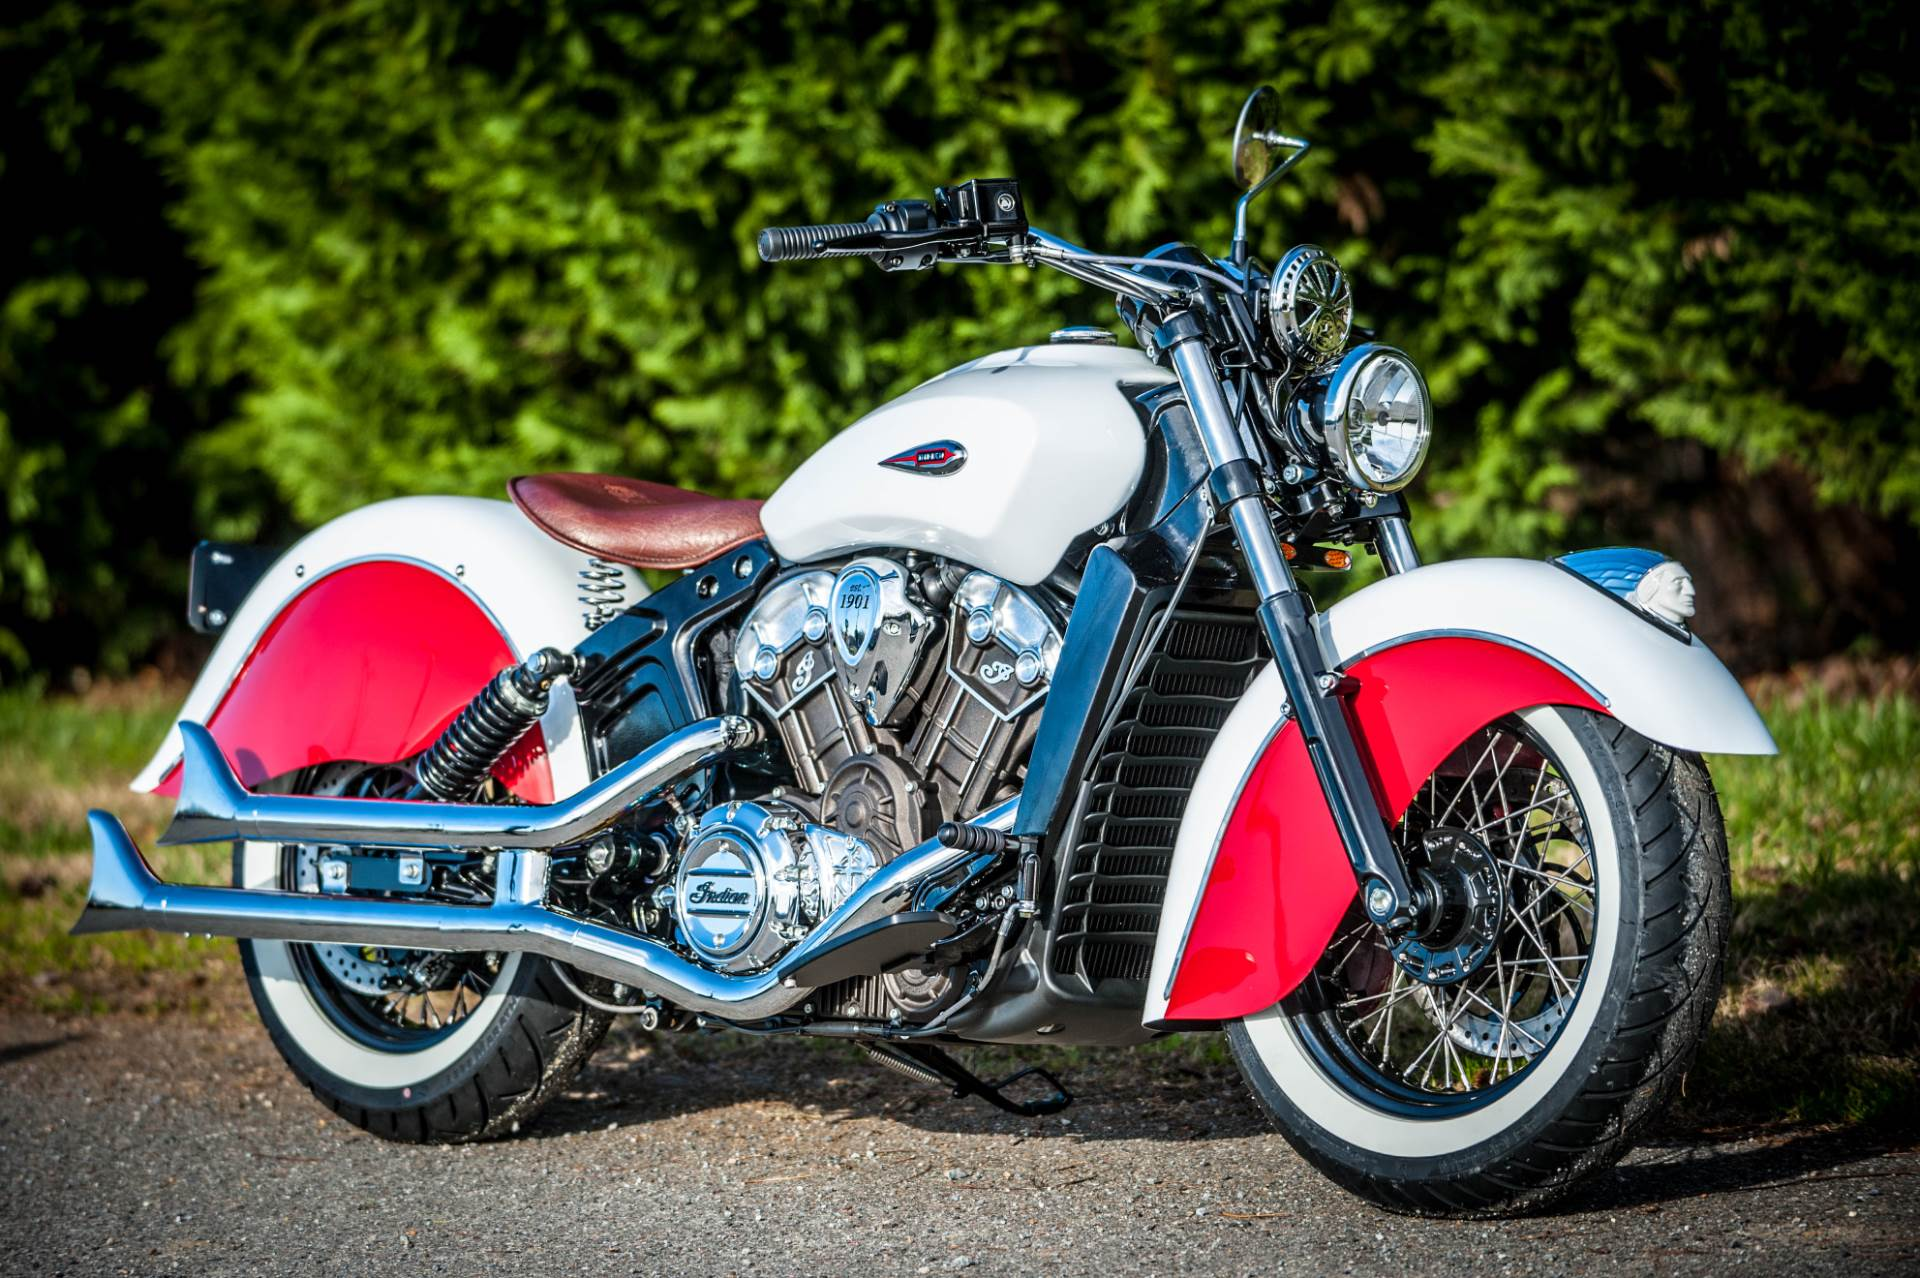 2016 Indian Scout Fusion - Award Winner in Lowell, North Carolina